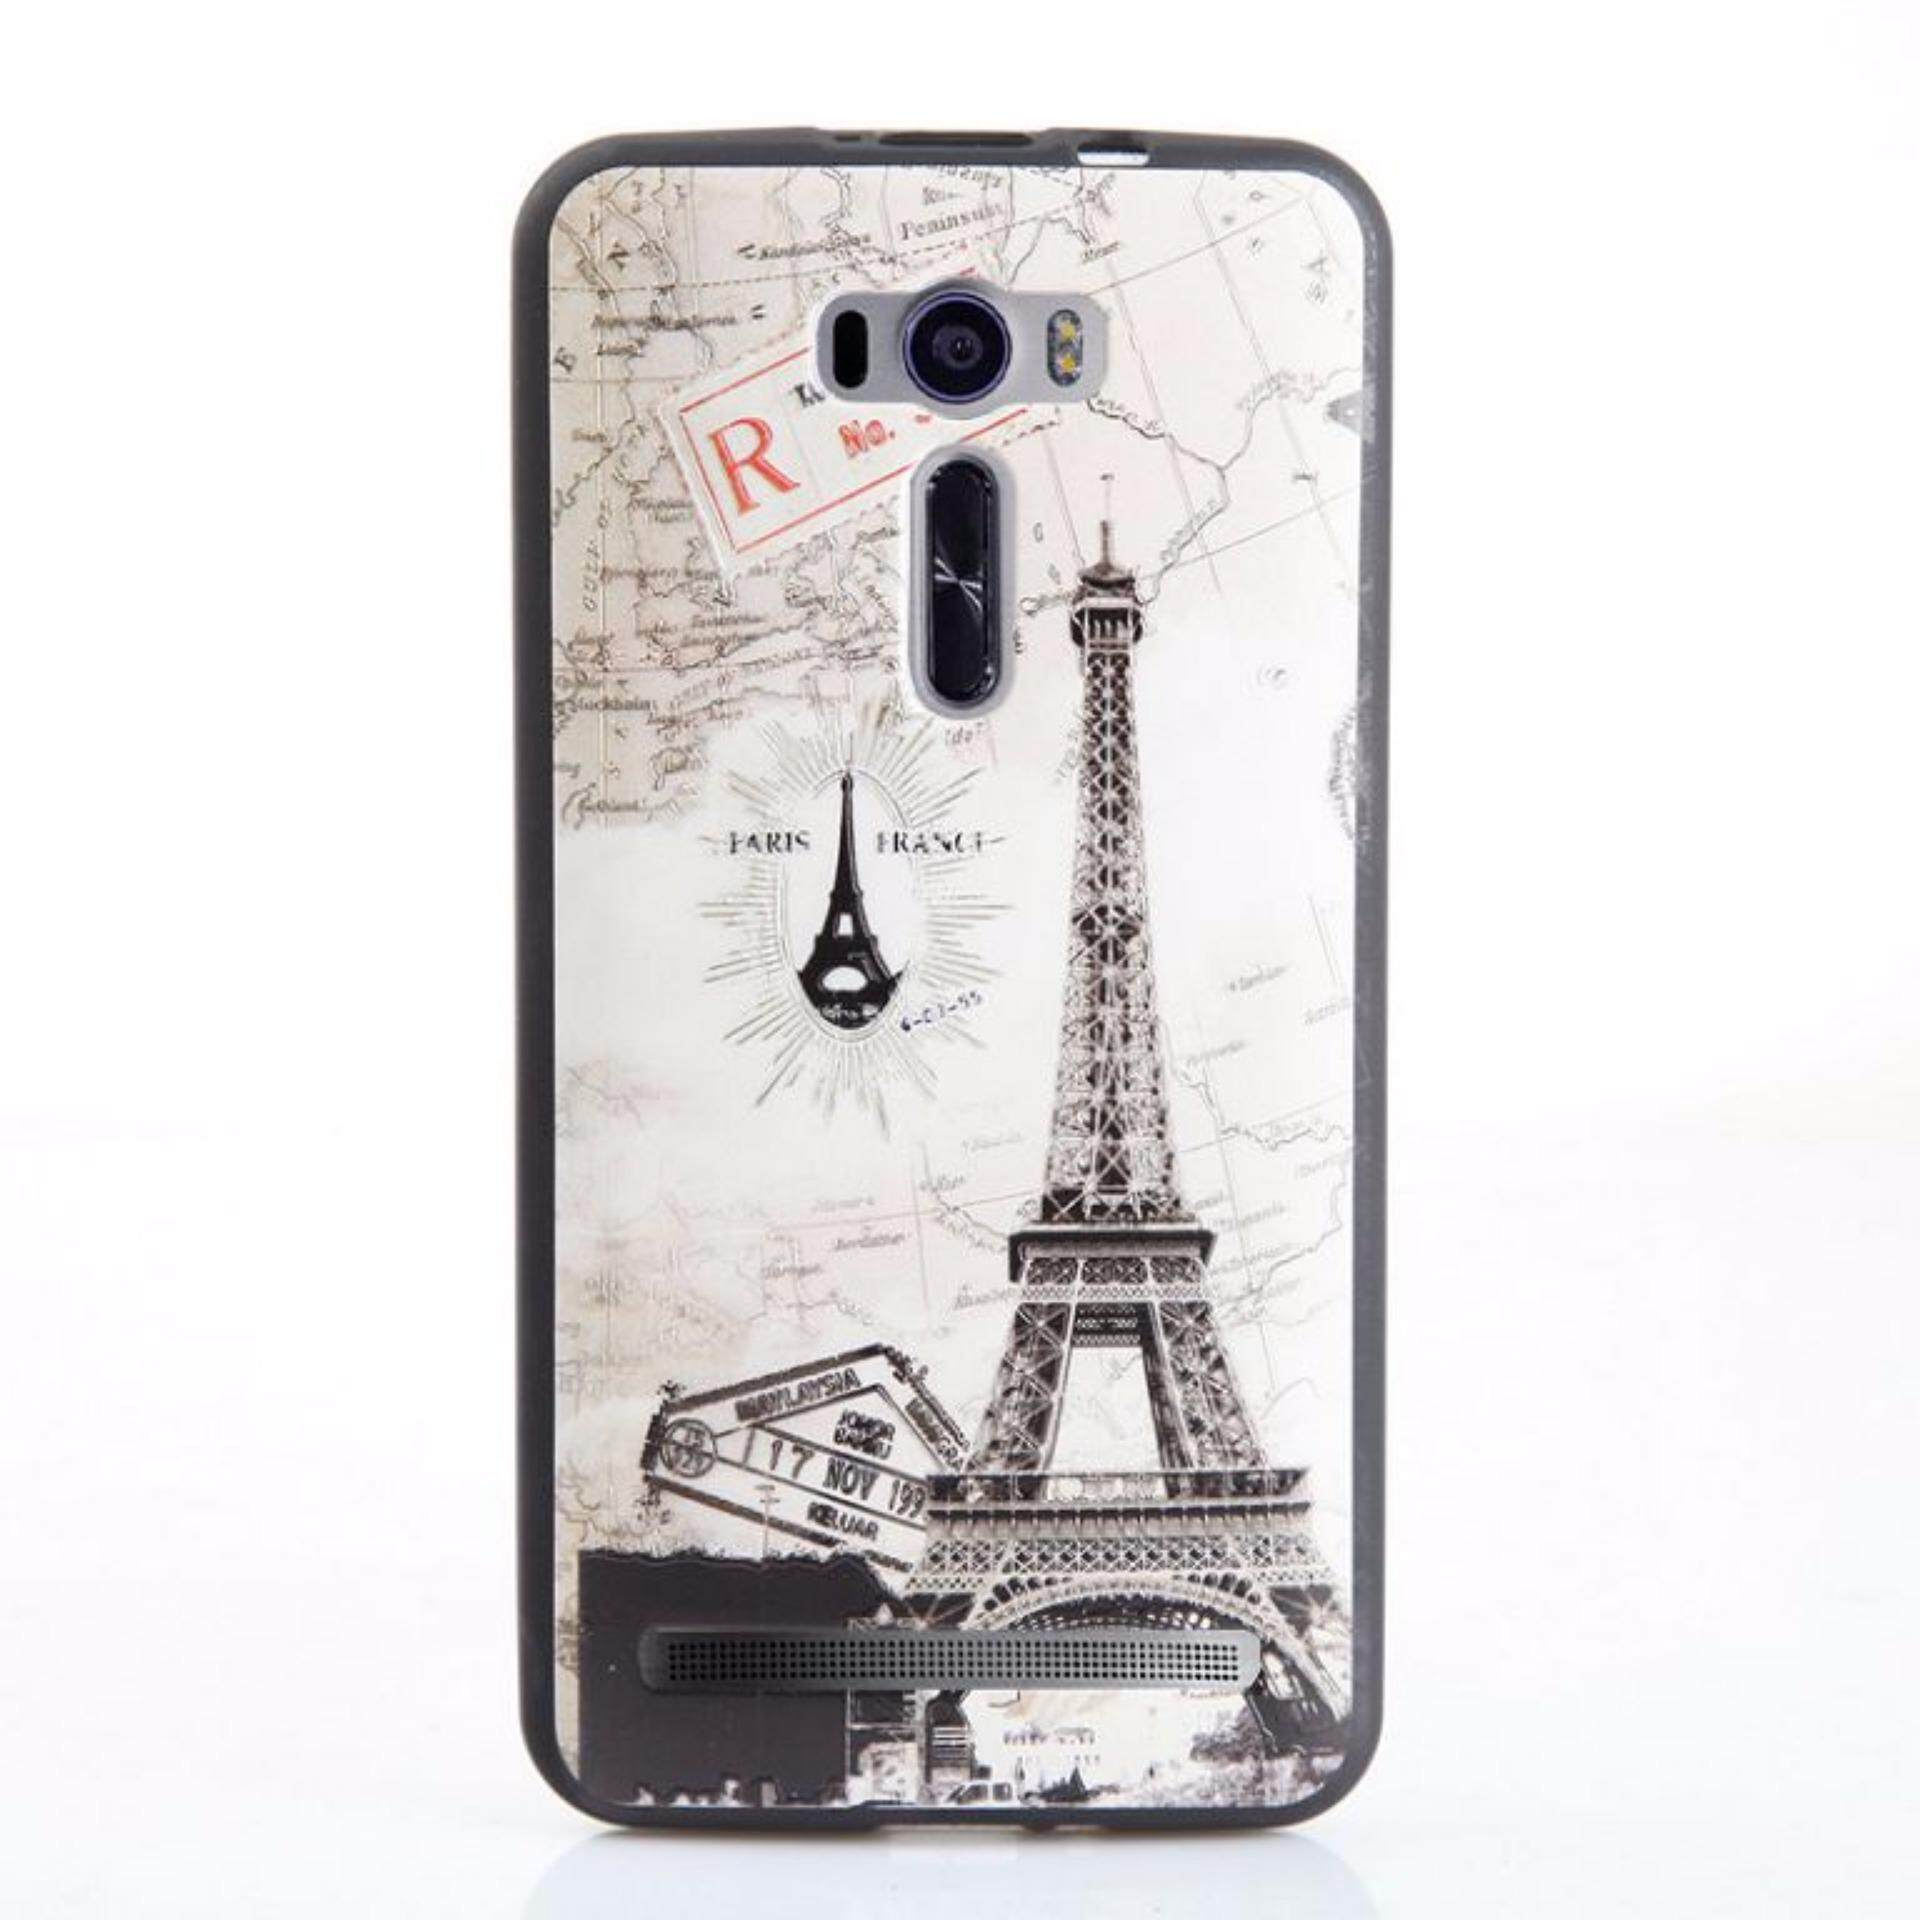 Soft Tpu 3d Embossed Painting Cover Case For Asus Zenfone 2 Laser Ze601kl Ze601klmap Tower